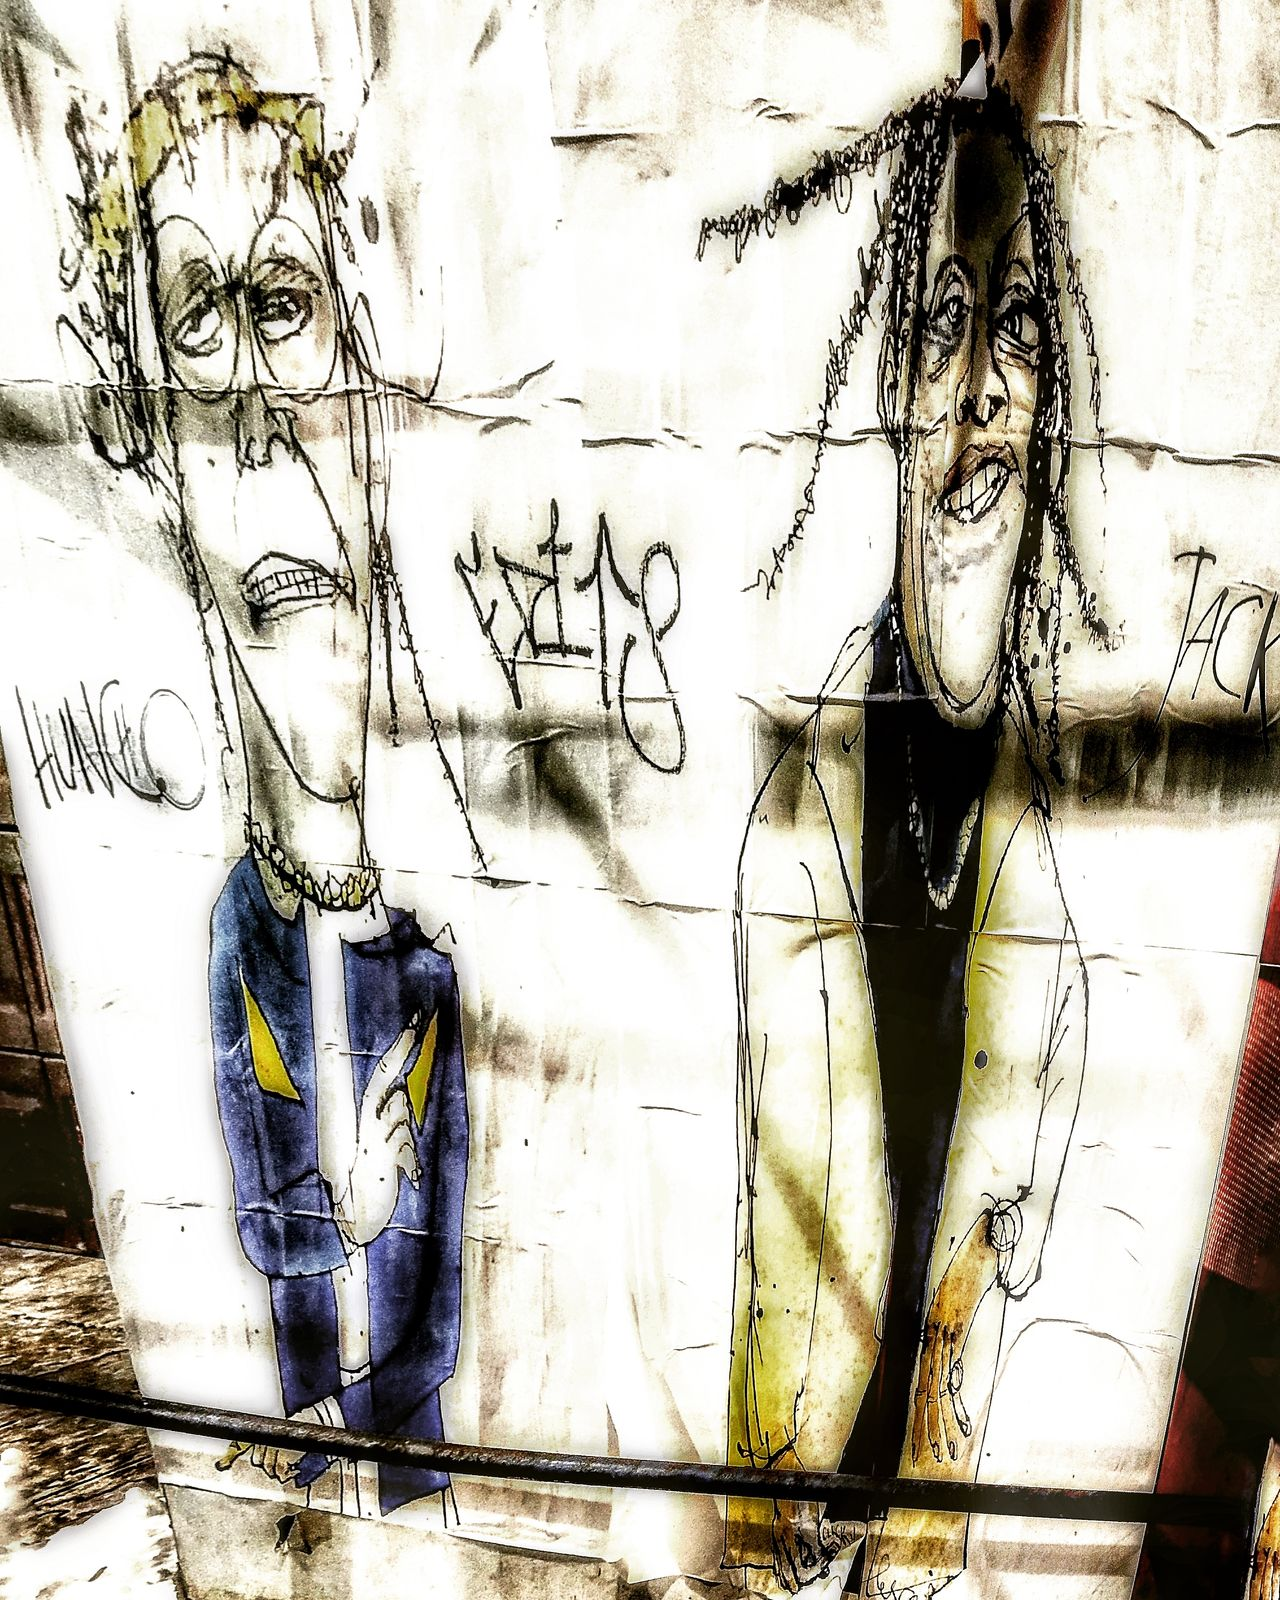 Posted Bills Graffiti Day Outdoors Backgrounds One Person Human Body Part Youth Culture Young Adult Human Hand Close-up Only Women People Adults Only Adult